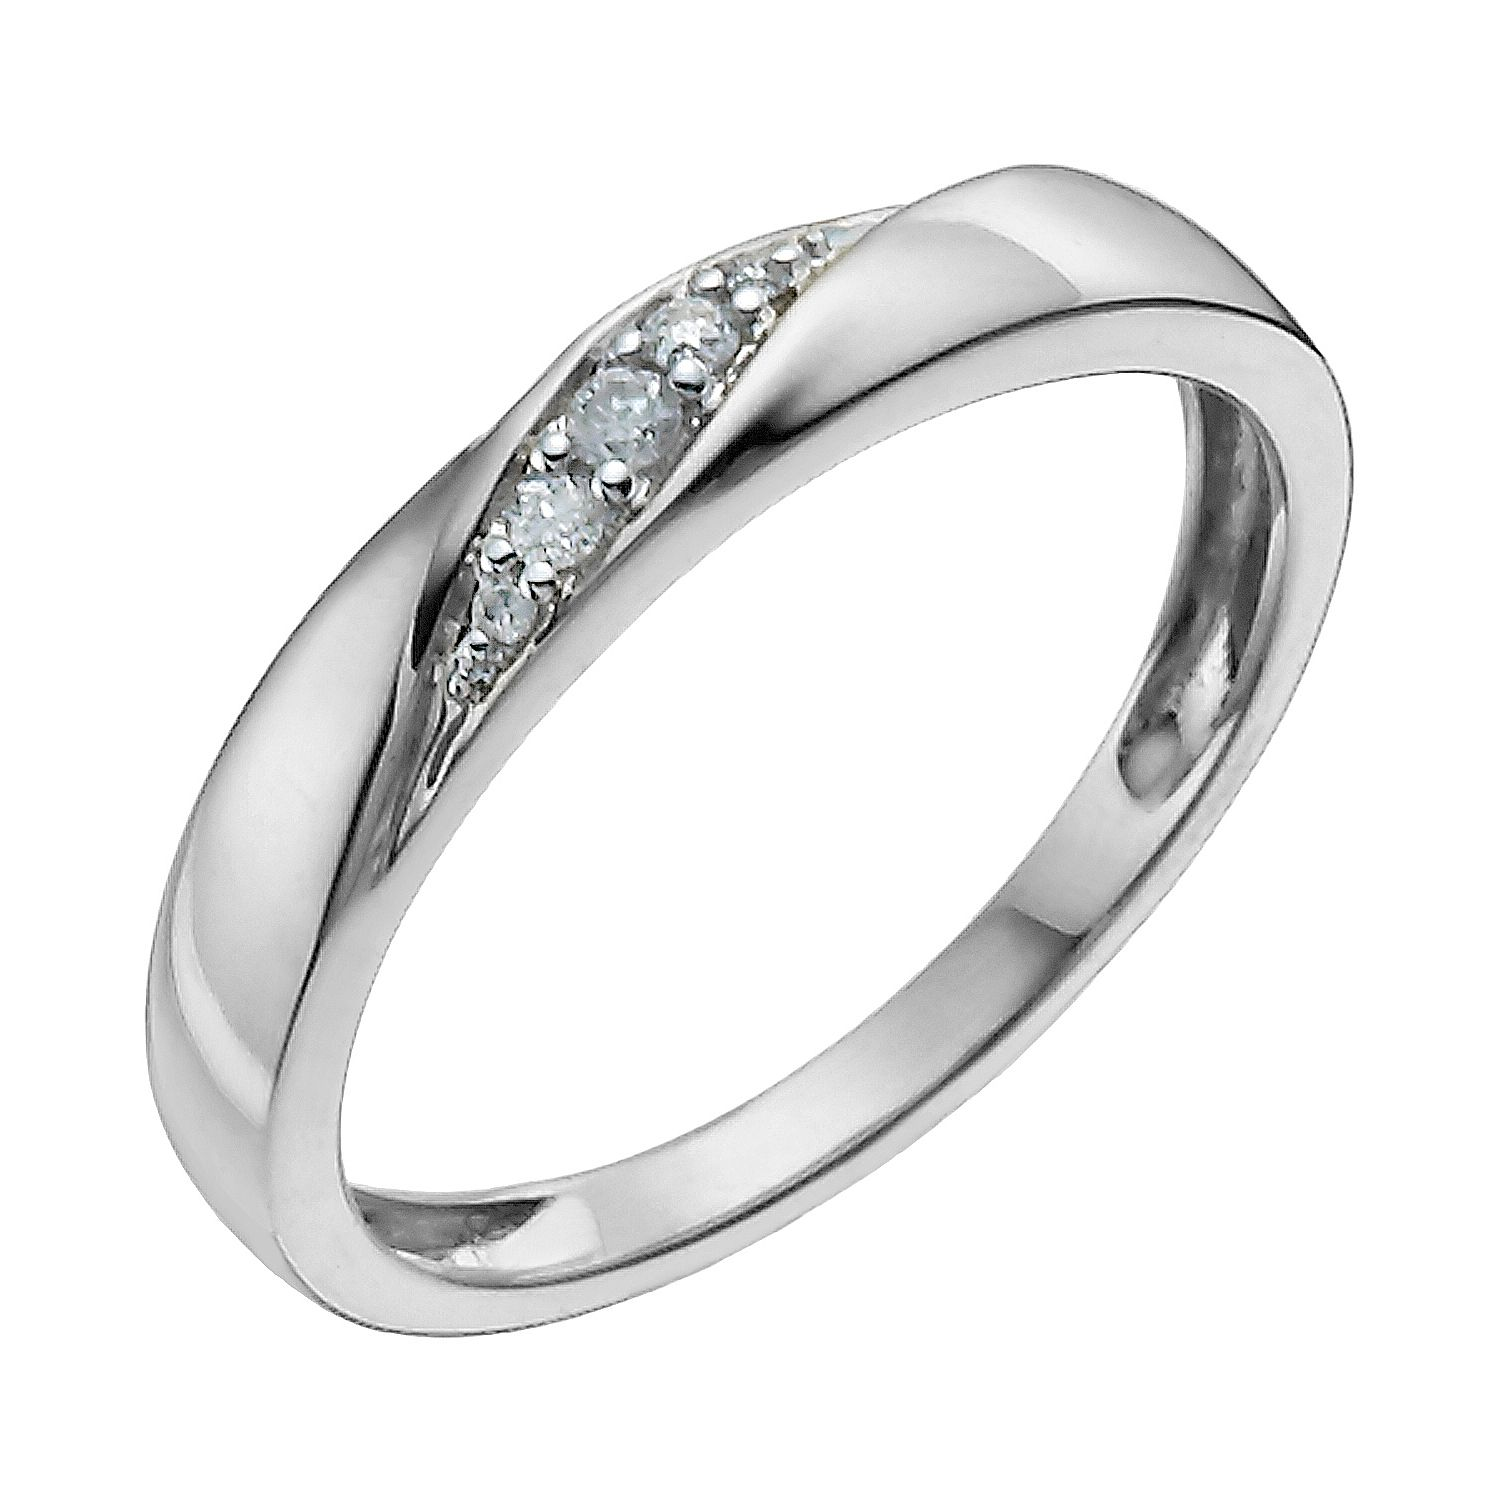 diamong up vintage wedding kara diamond rings inspired engagement by filigree kirk signature